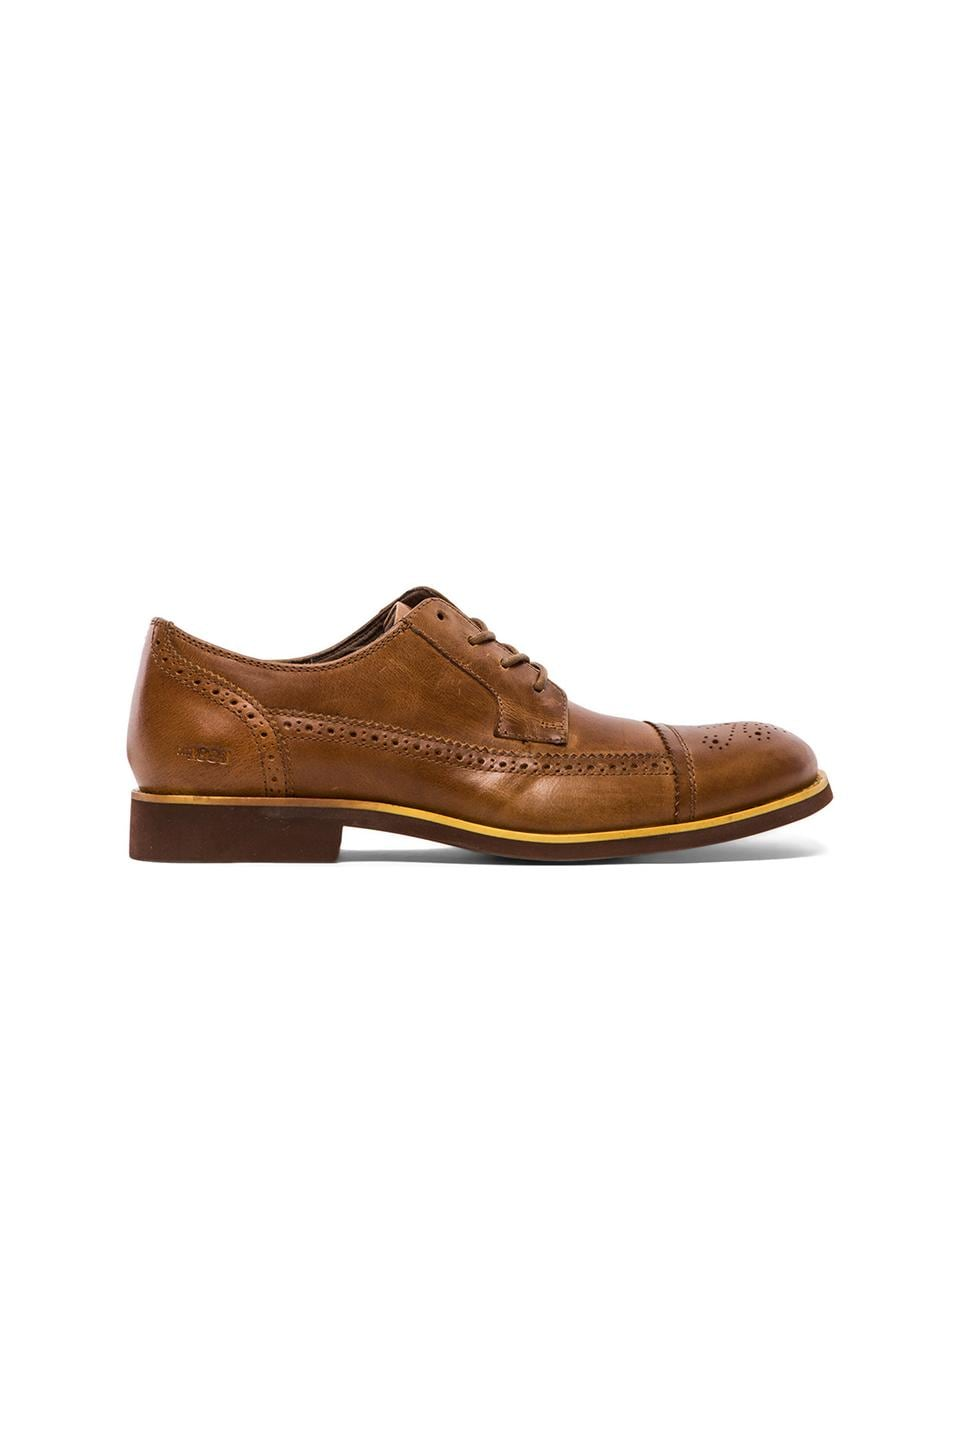 Wolverine 1883 Wallace Brogue Oxford in Tan